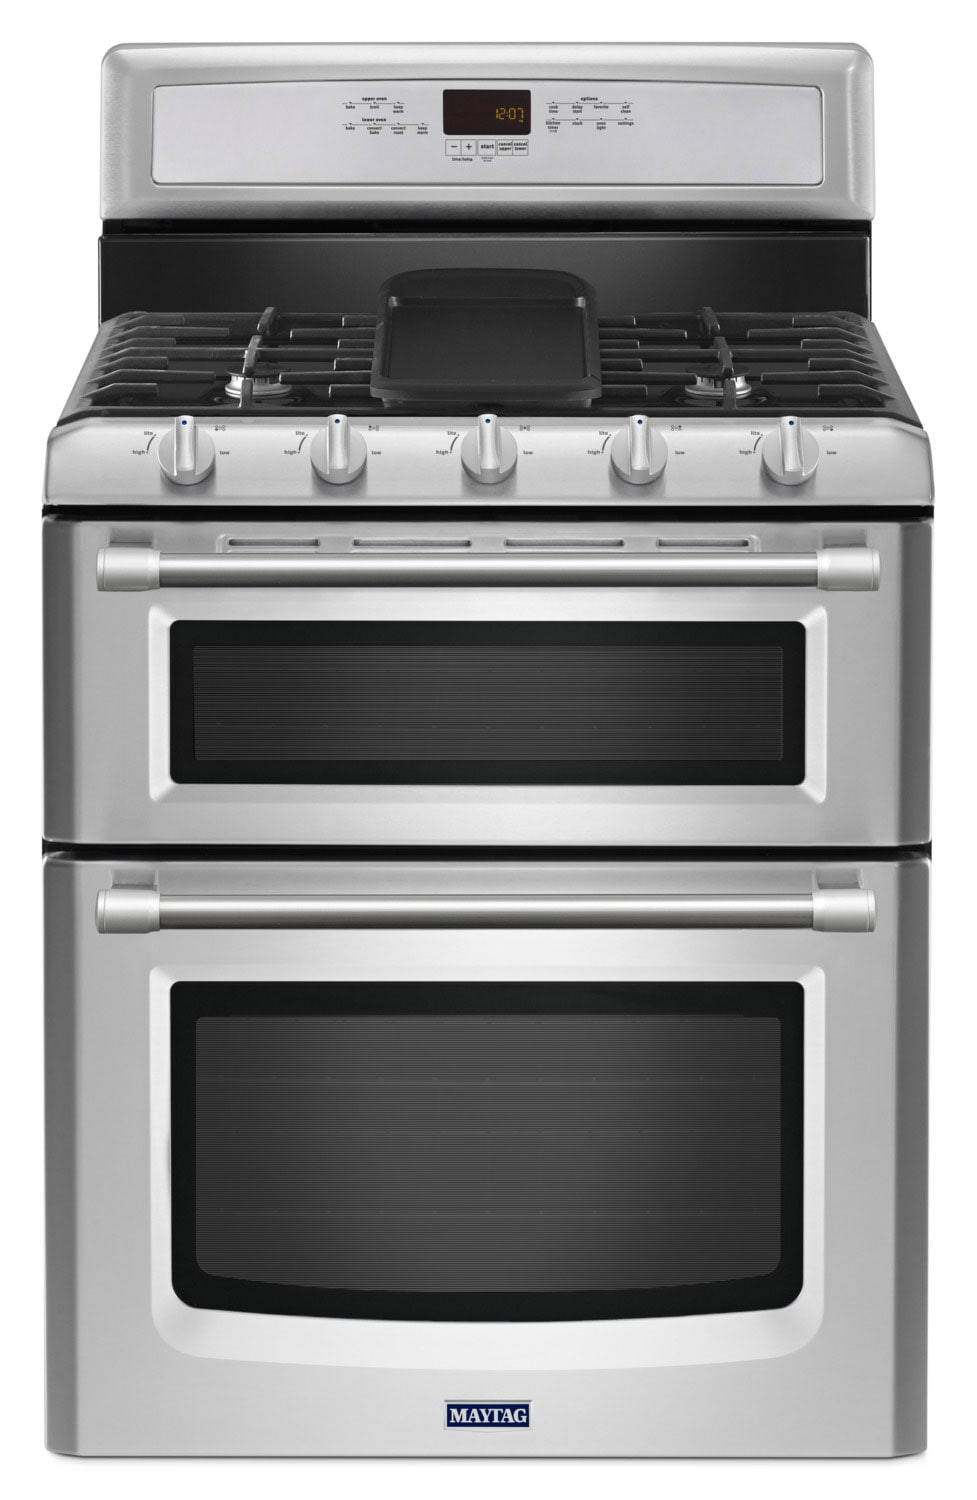 Maytag Gemini® 6.0 Cu. Ft. Double Oven Gas Freestanding Range – MGT8820DS